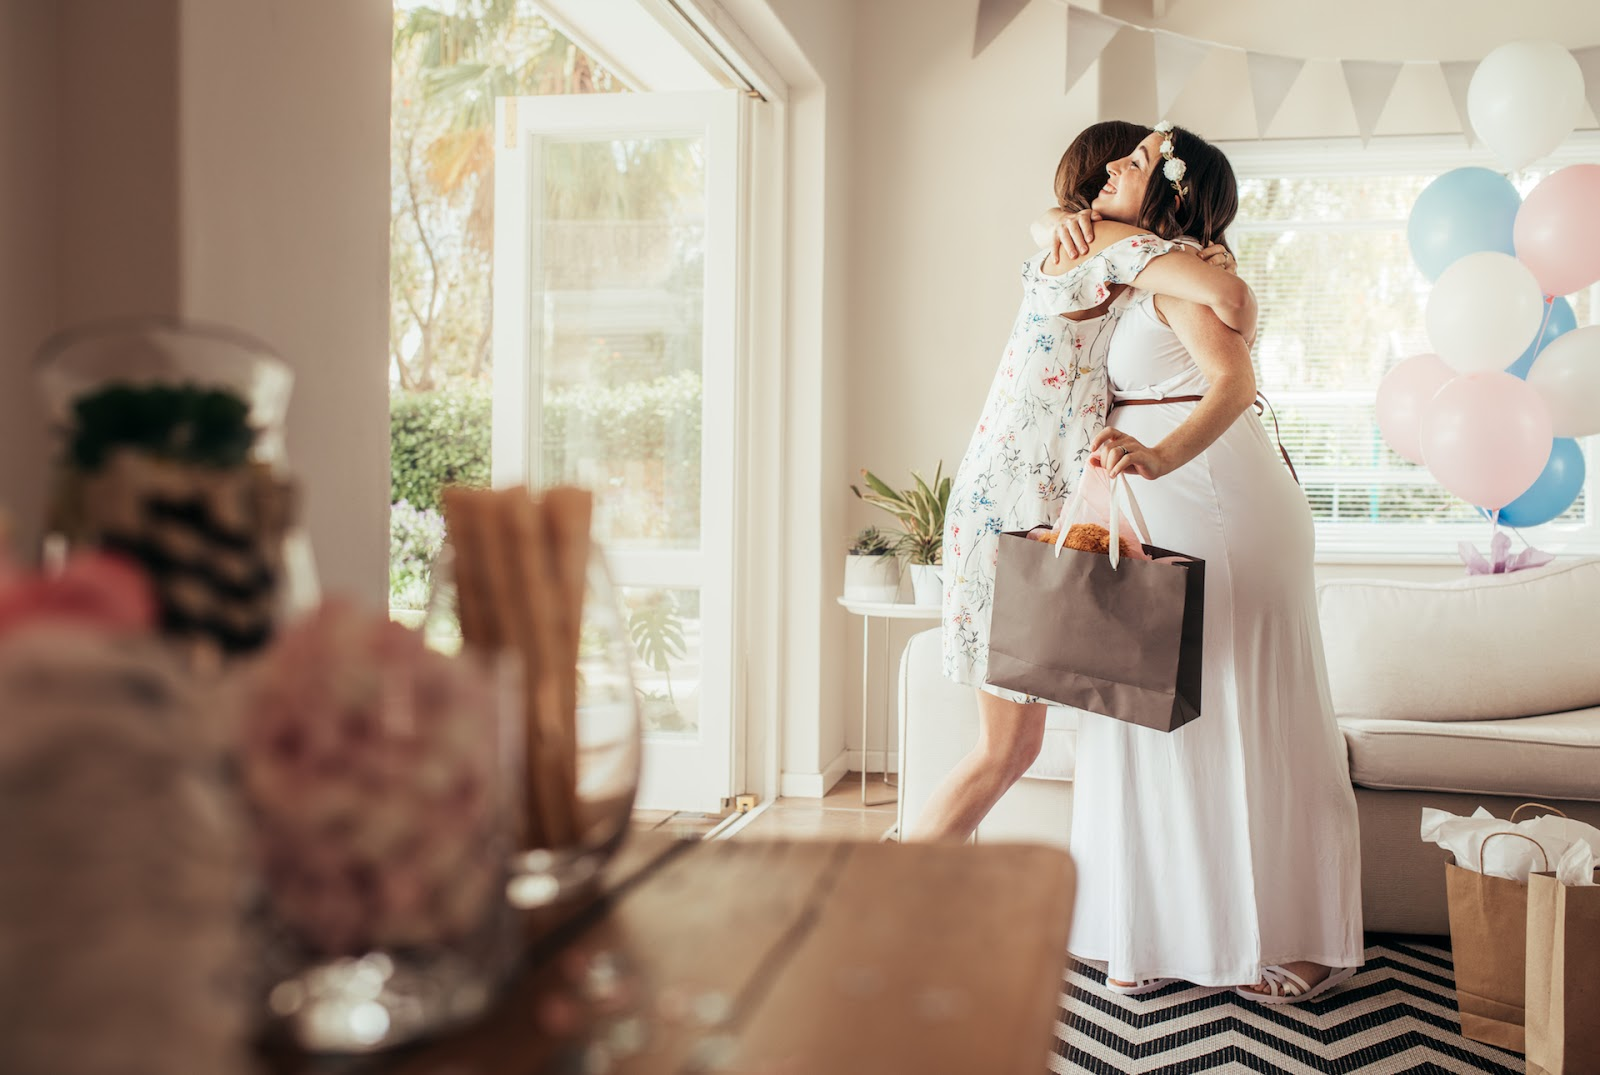 Woman hugging her pregnant friend at her baby shower